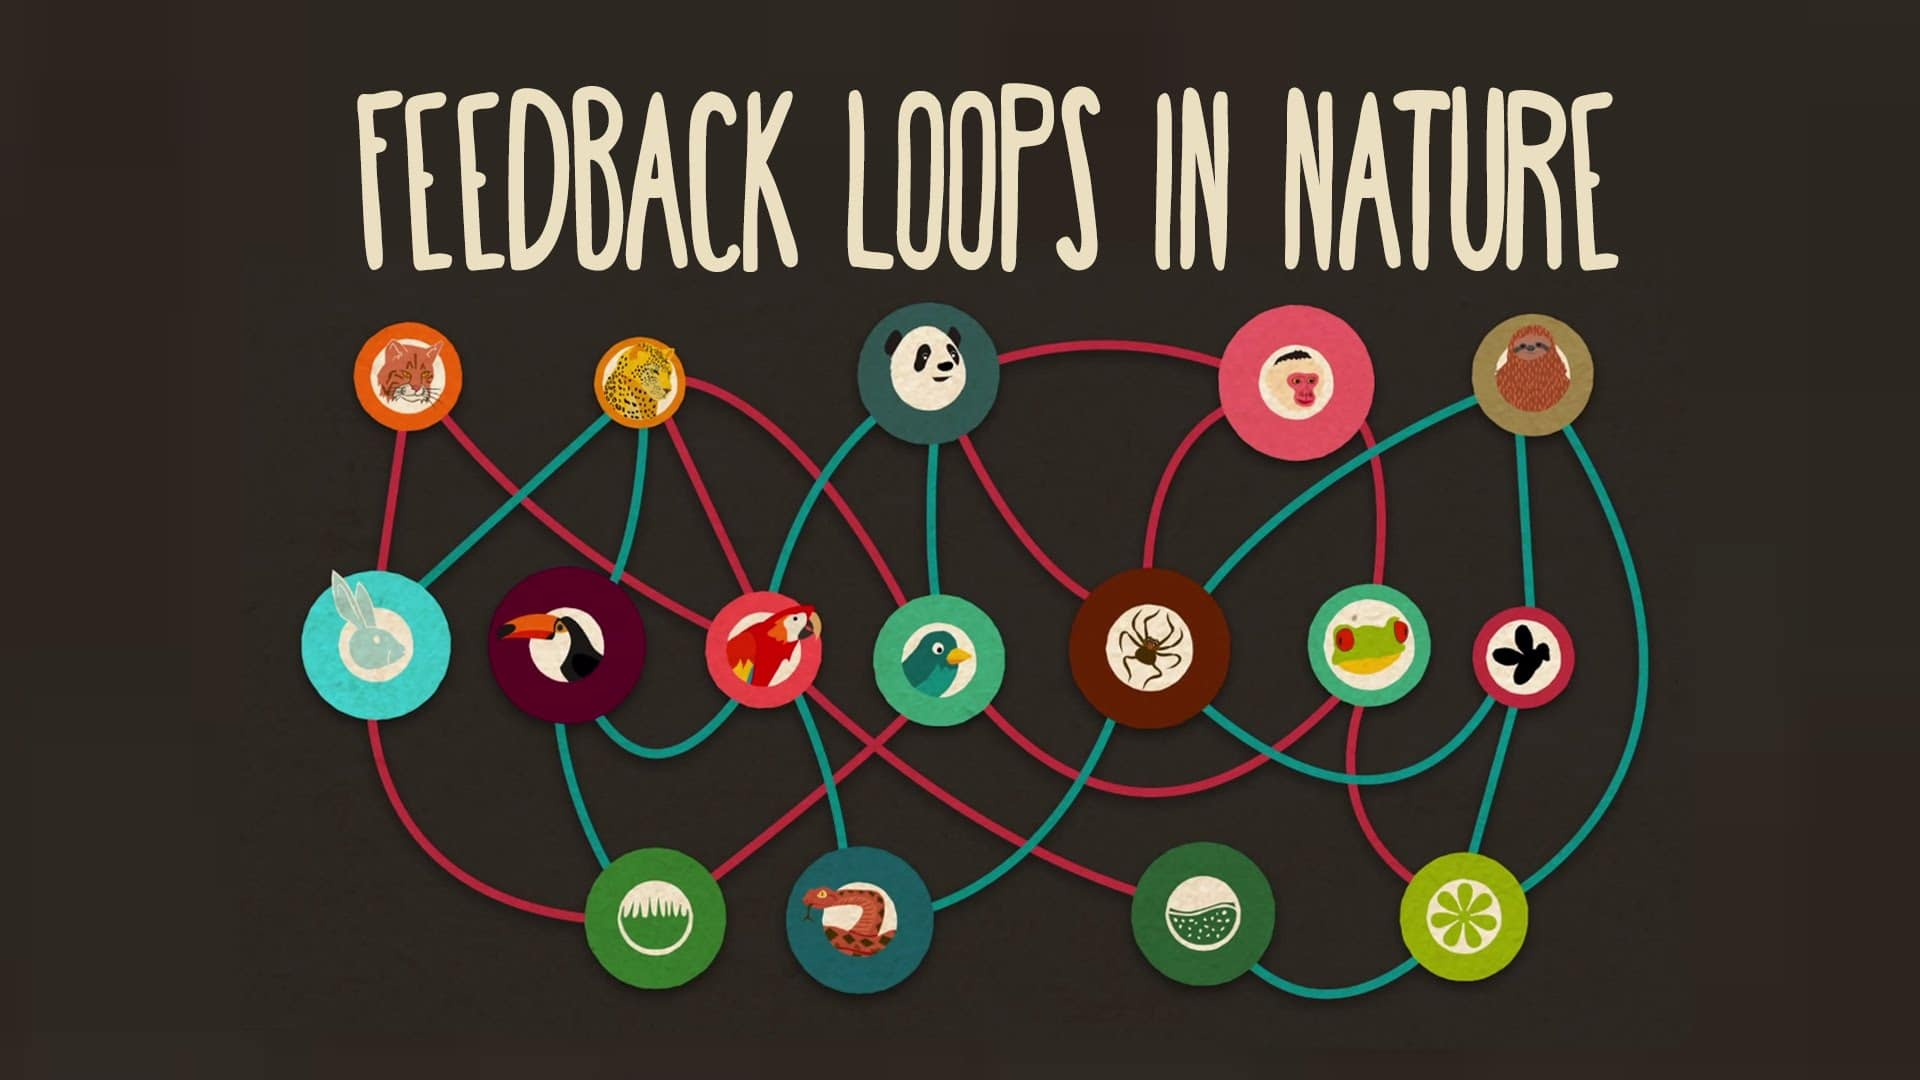 Feedback Loops How Nature Gets Its Rhythms